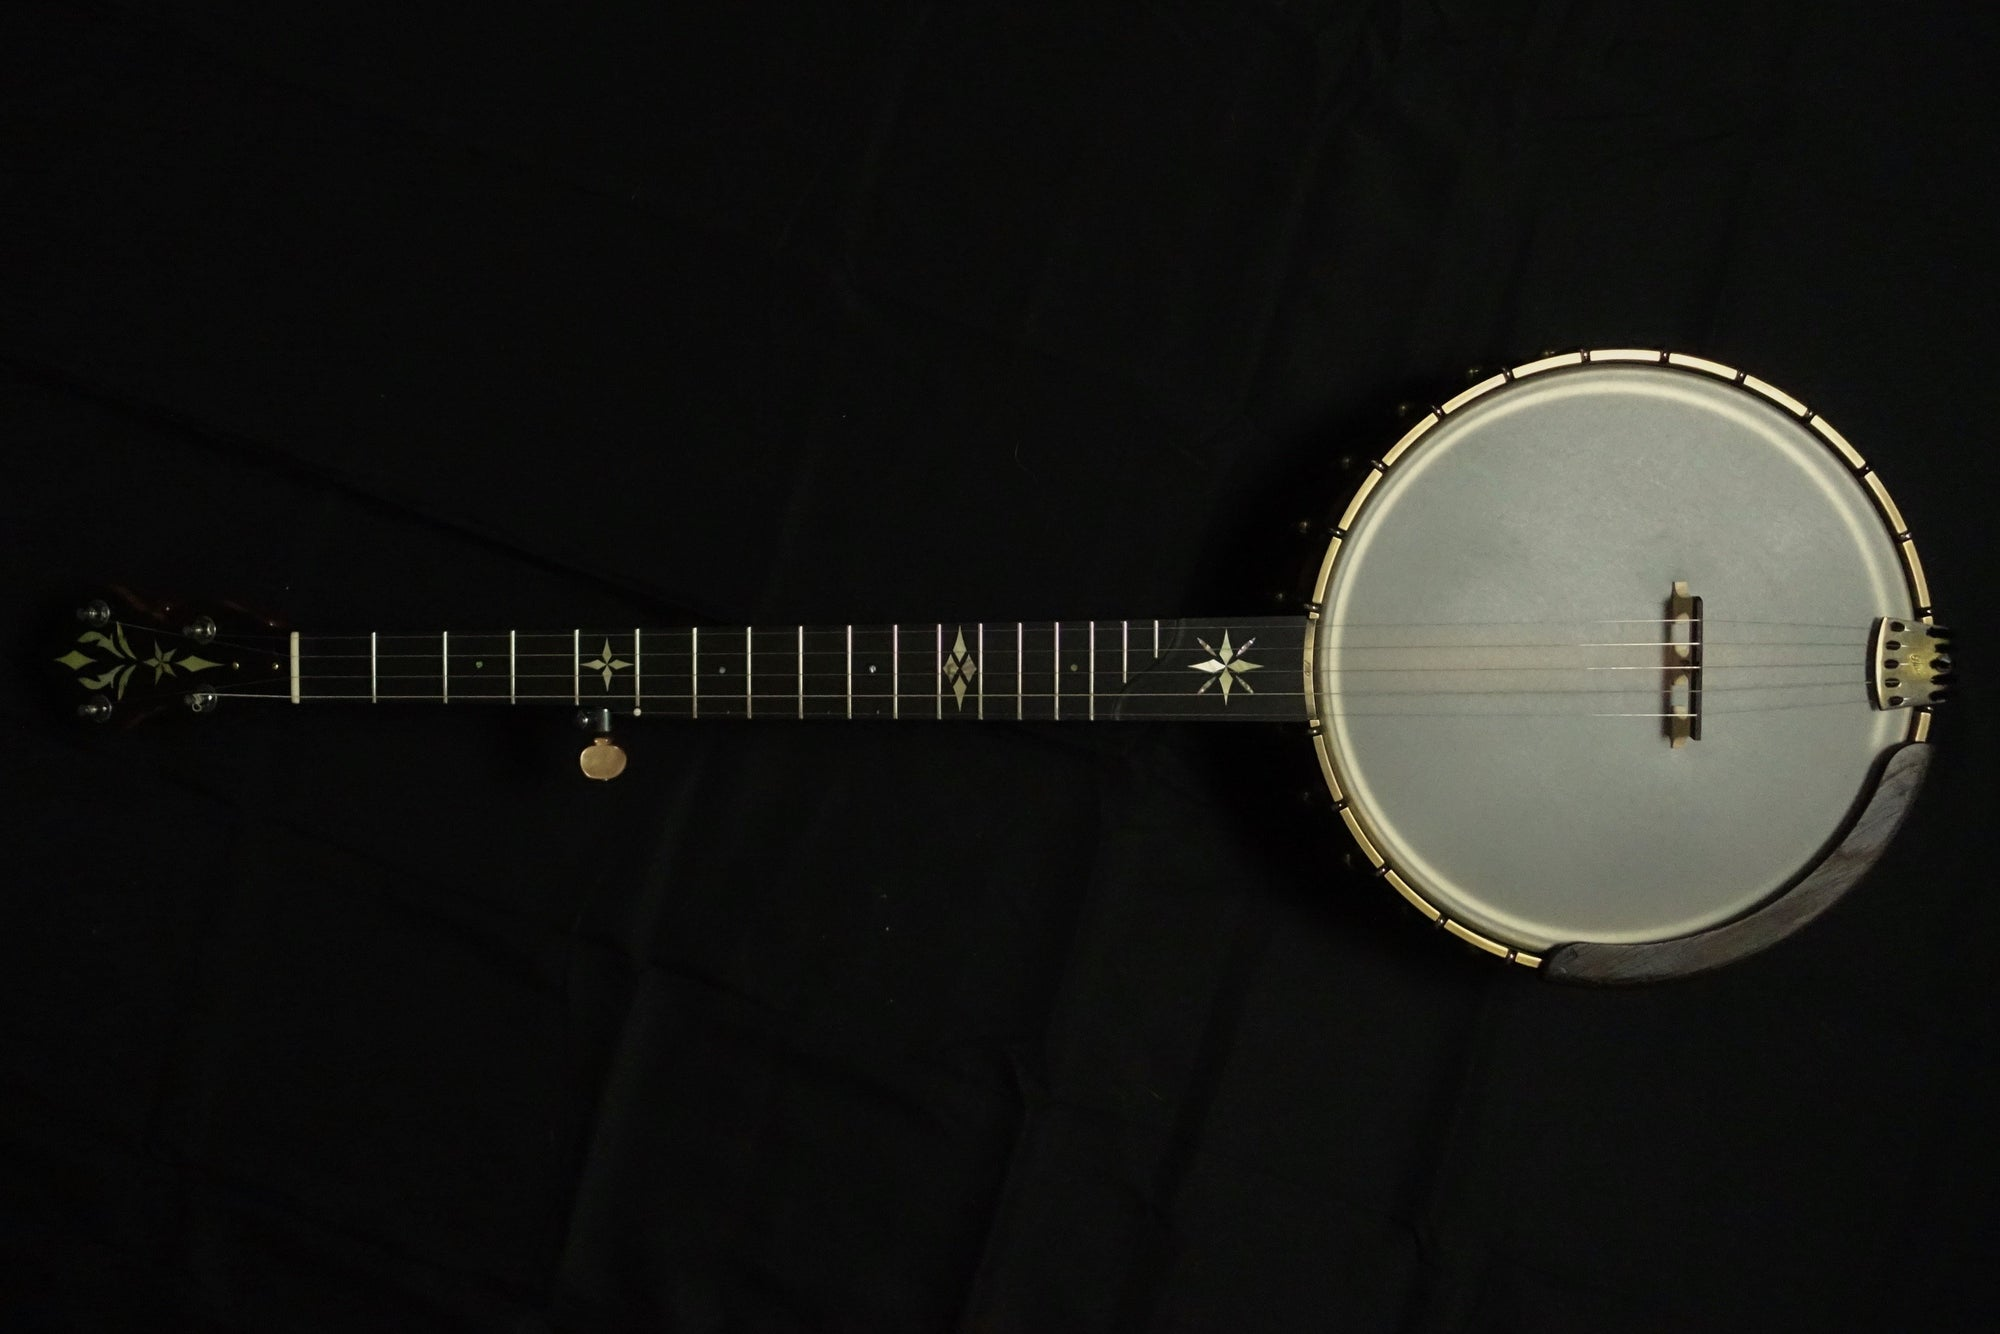 Ome North Star 5 String Banjo with Tubaphone Tone Ring and Select Cherry Neck - Banjo Studio